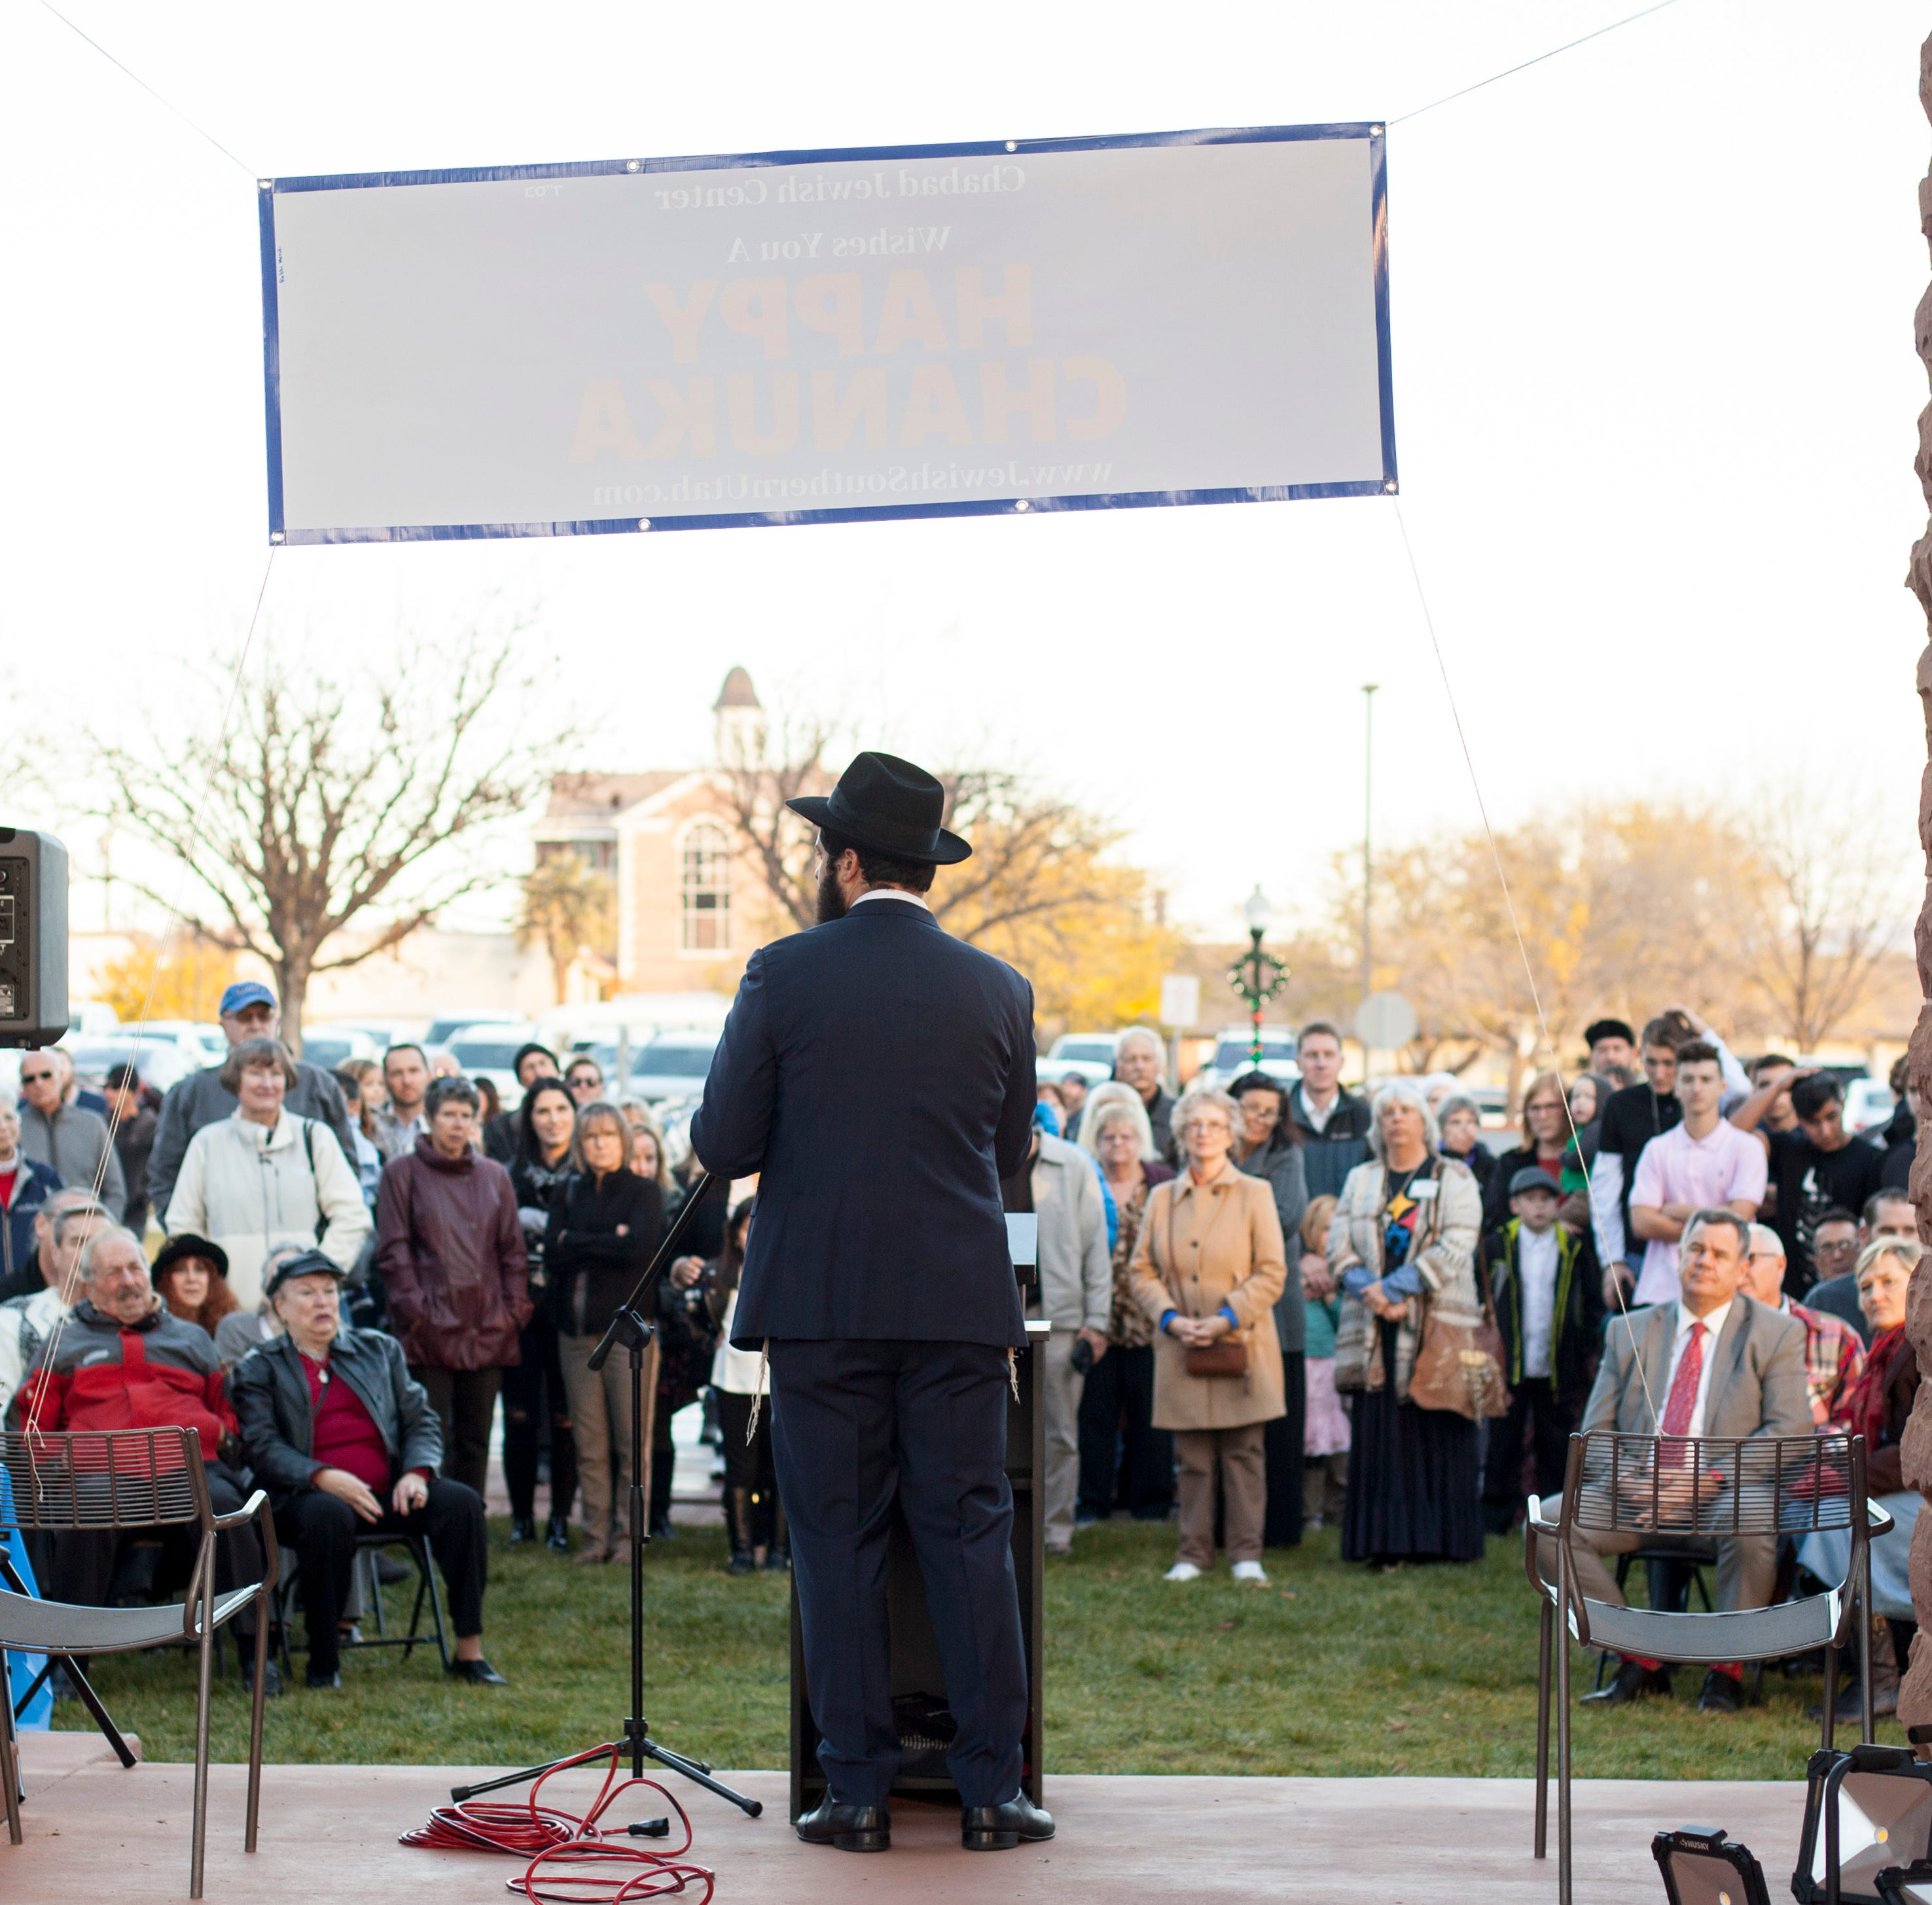 St. George community celebrates Hanukkah at town square